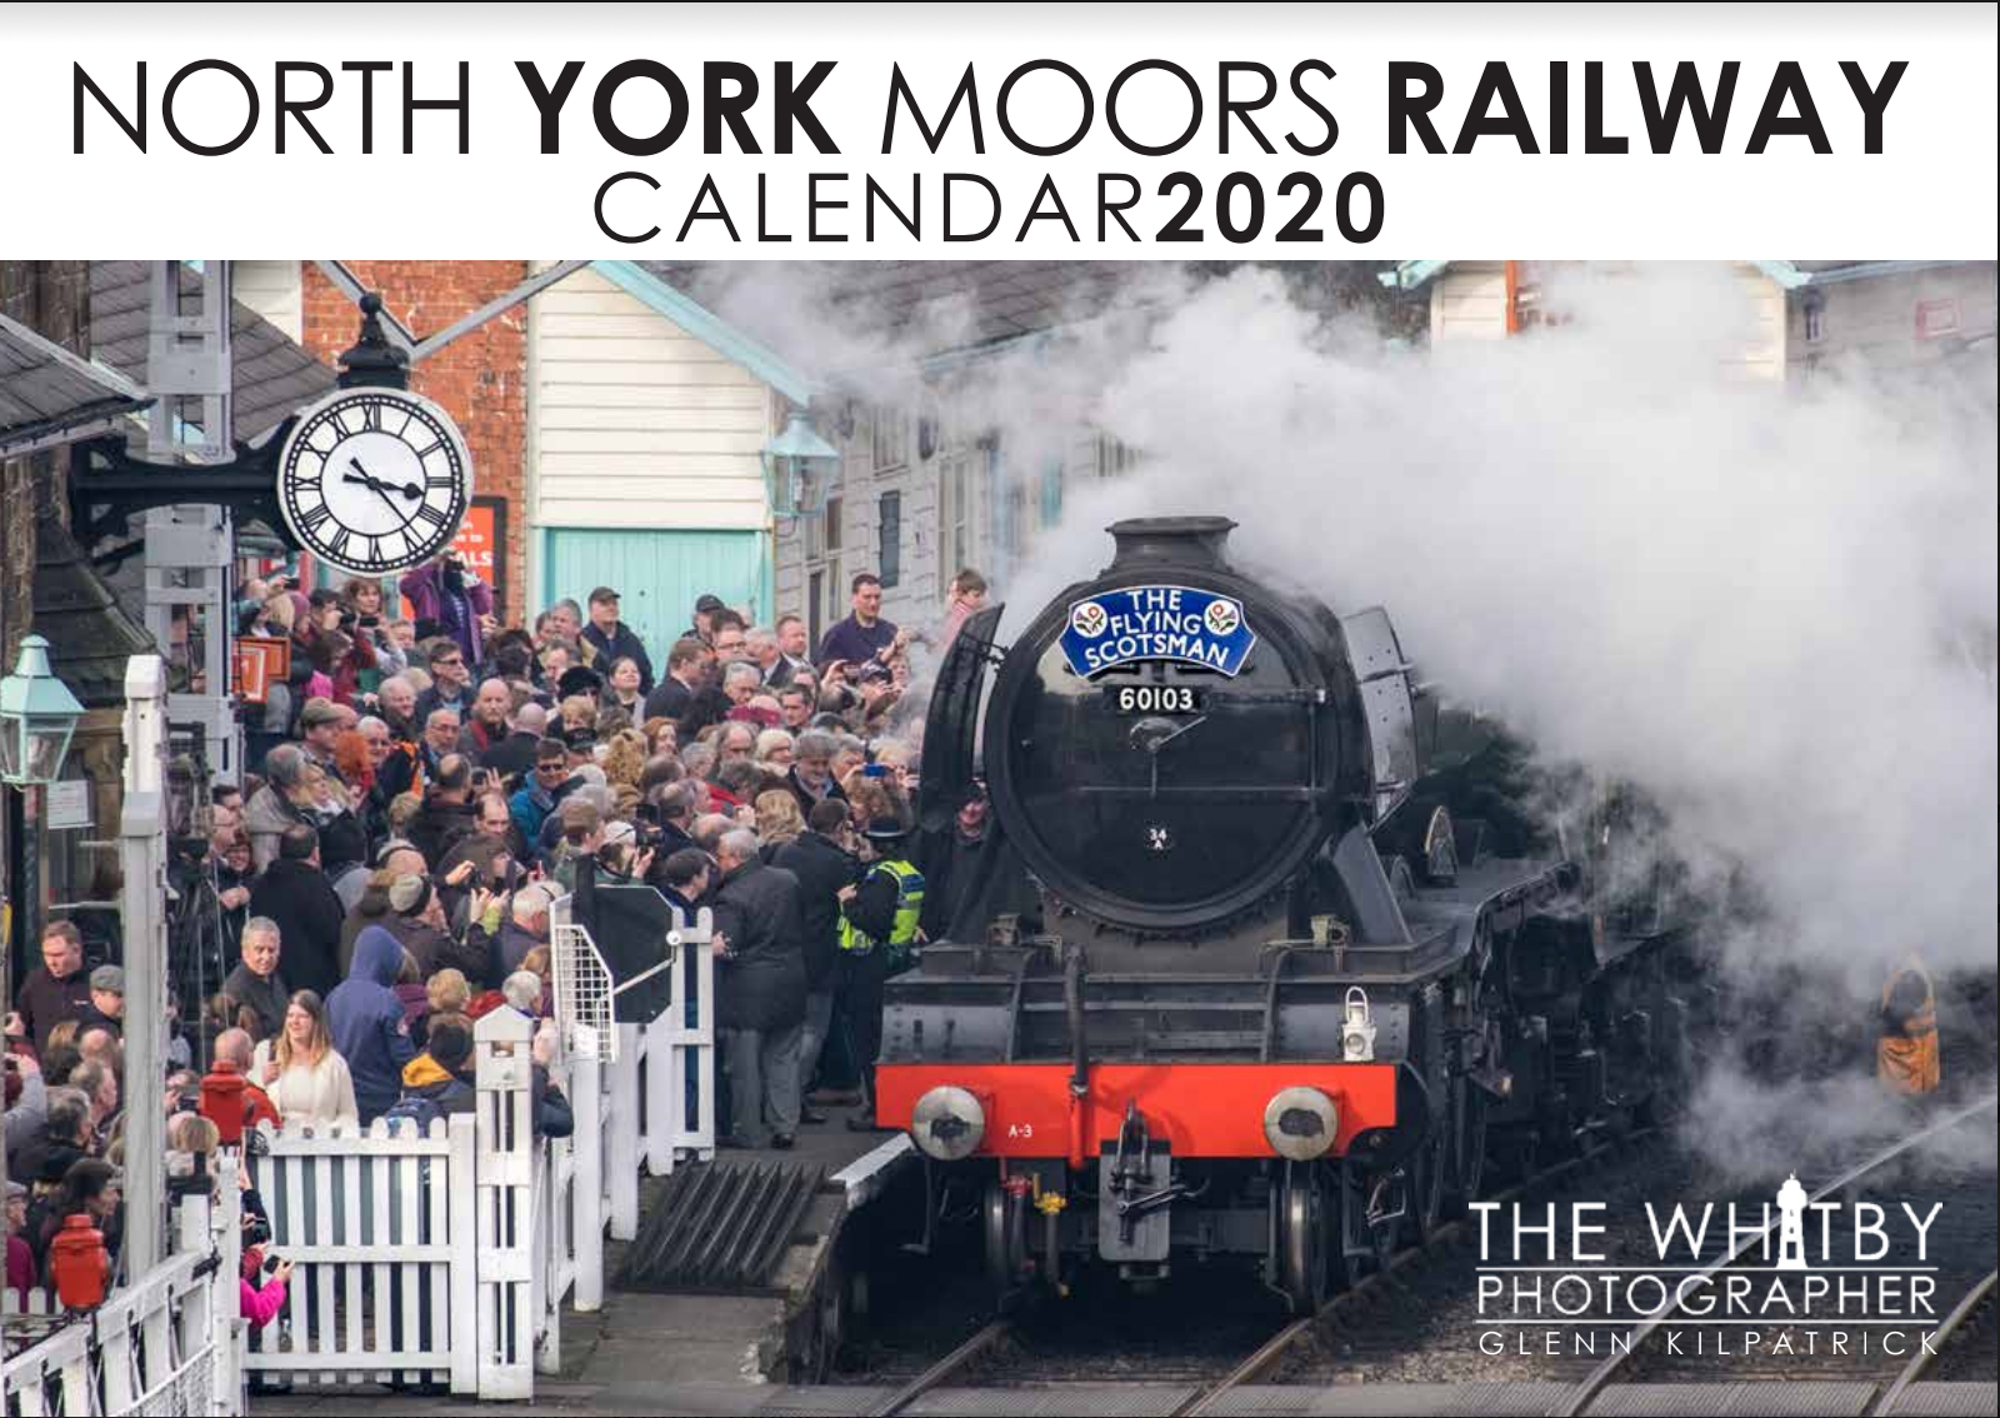 North Yorkshire Moors Railway Calendar 2020